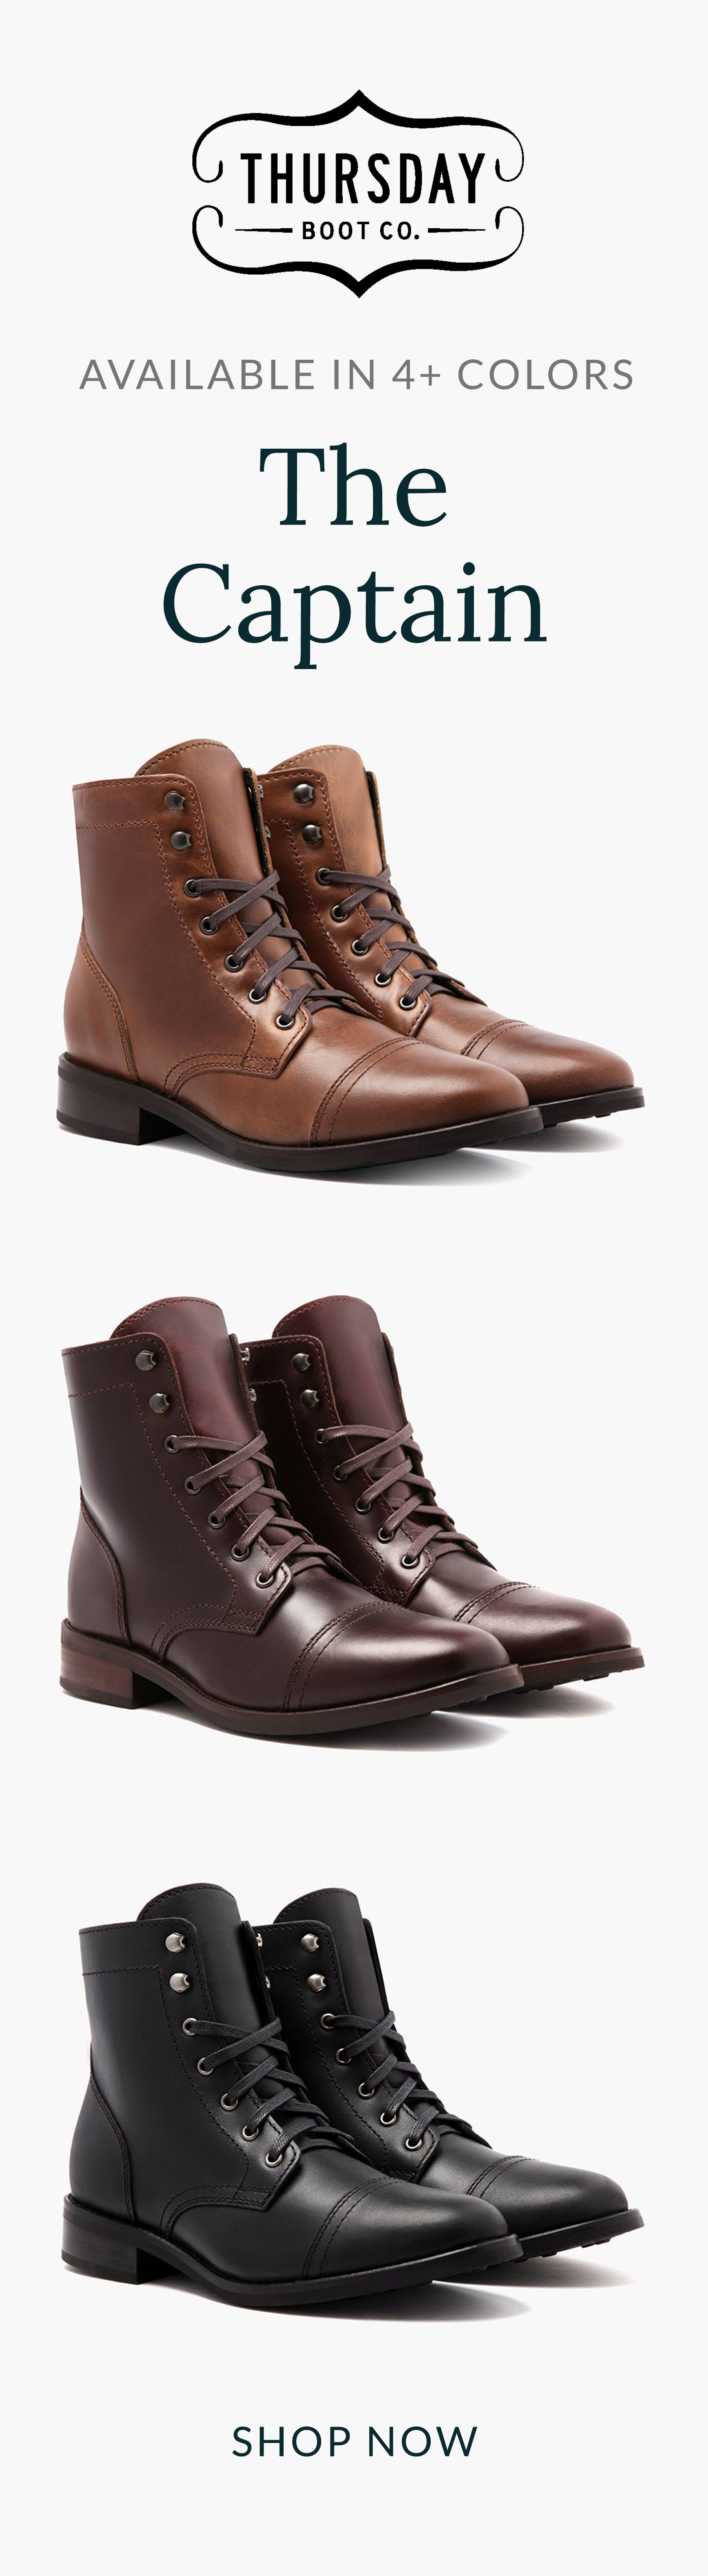 Captain Natural Bata shoes, Dress with boots, Stylish